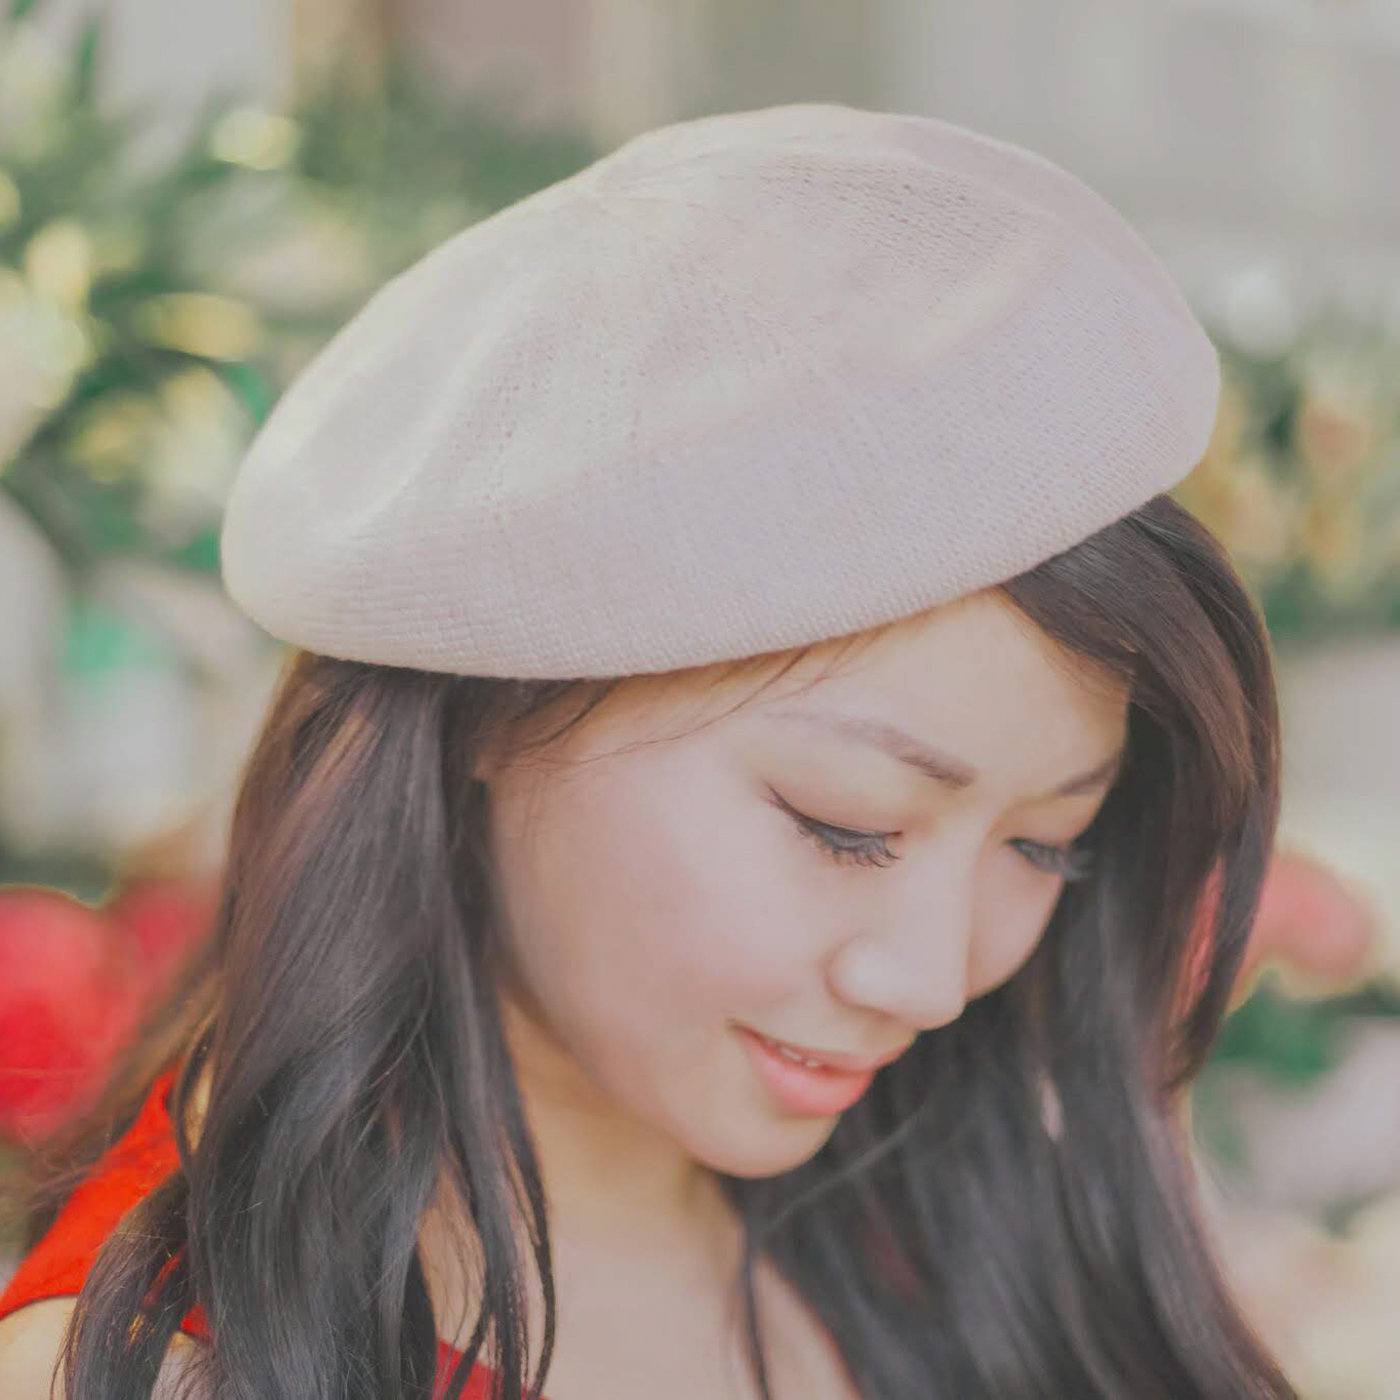 Les Lunes     •     Beret     Cost:  $48 (gifted)  Times Worn as of 3/2019:  2  Cost/Times Worn:  $24  Cost/30 Wears:  $1.60